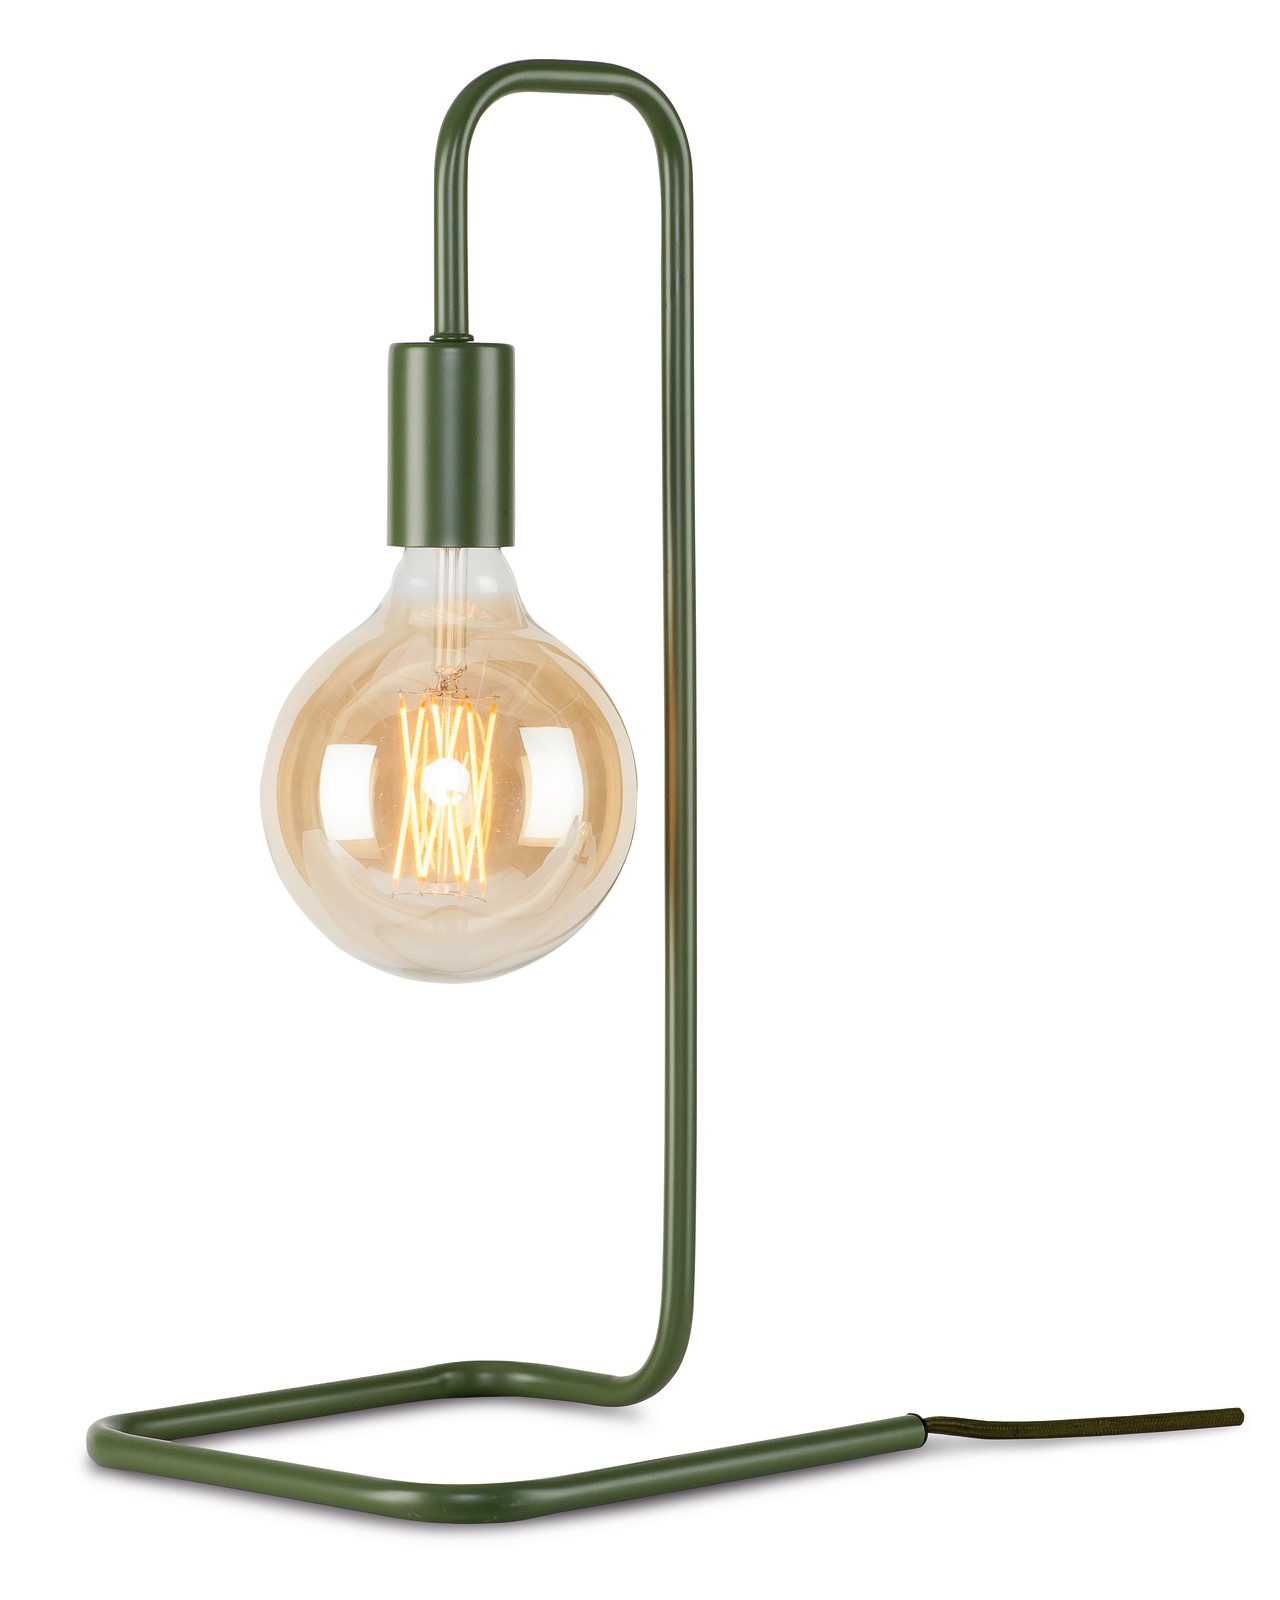 London table lamp London table lamp olive green